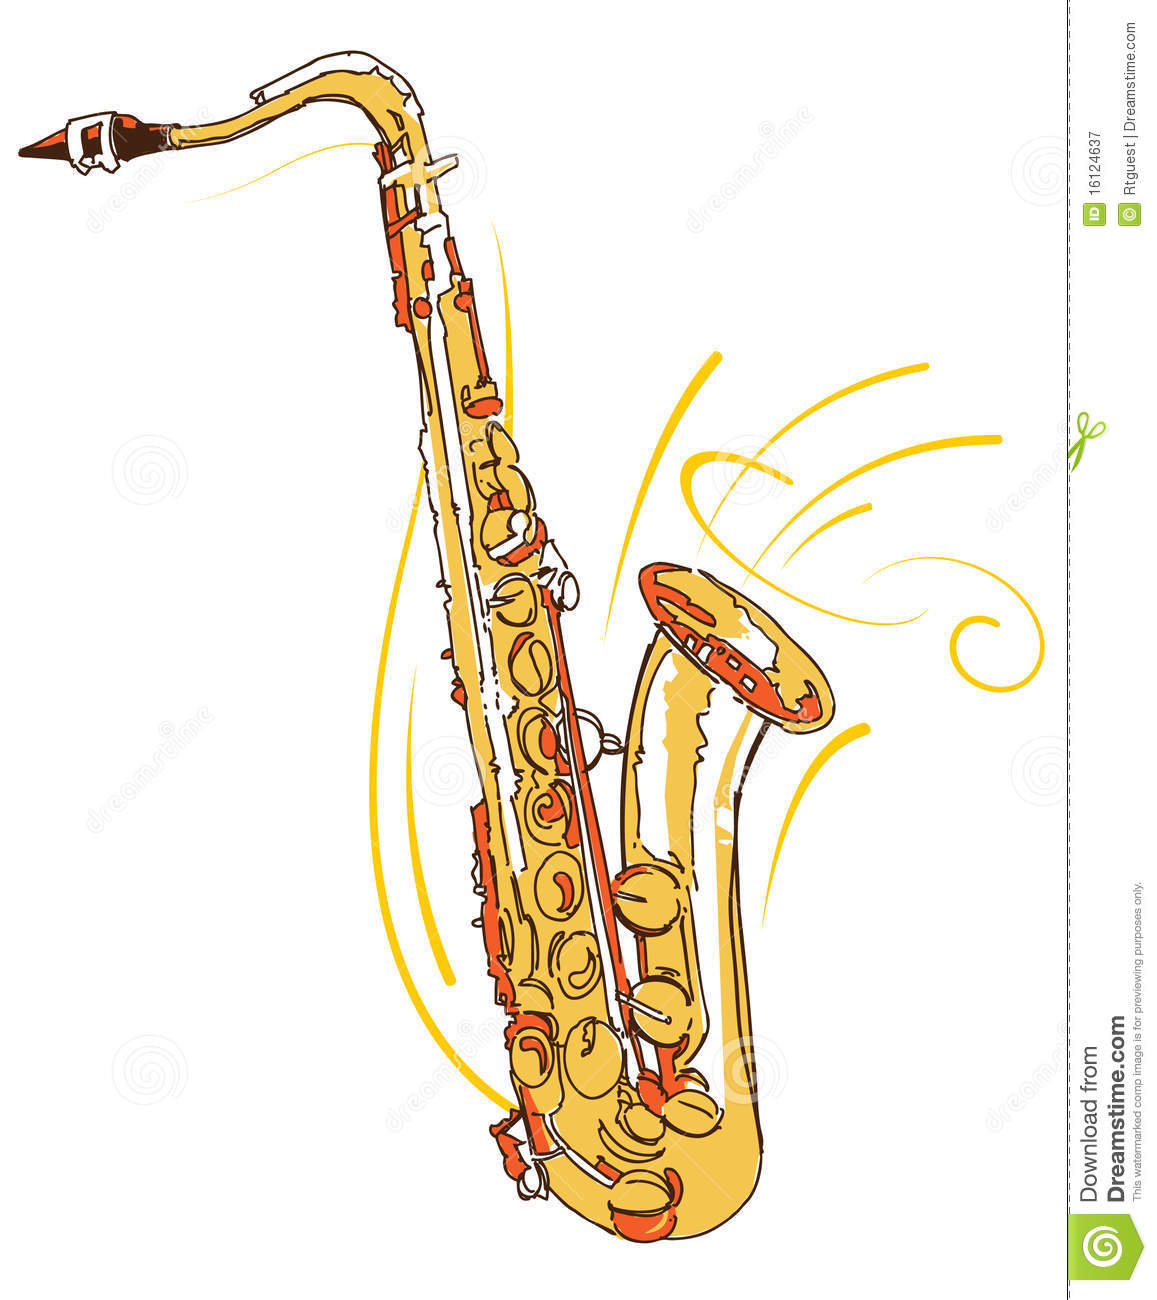 Saxophone Royalty Free Stock Photography - Image: 16124637